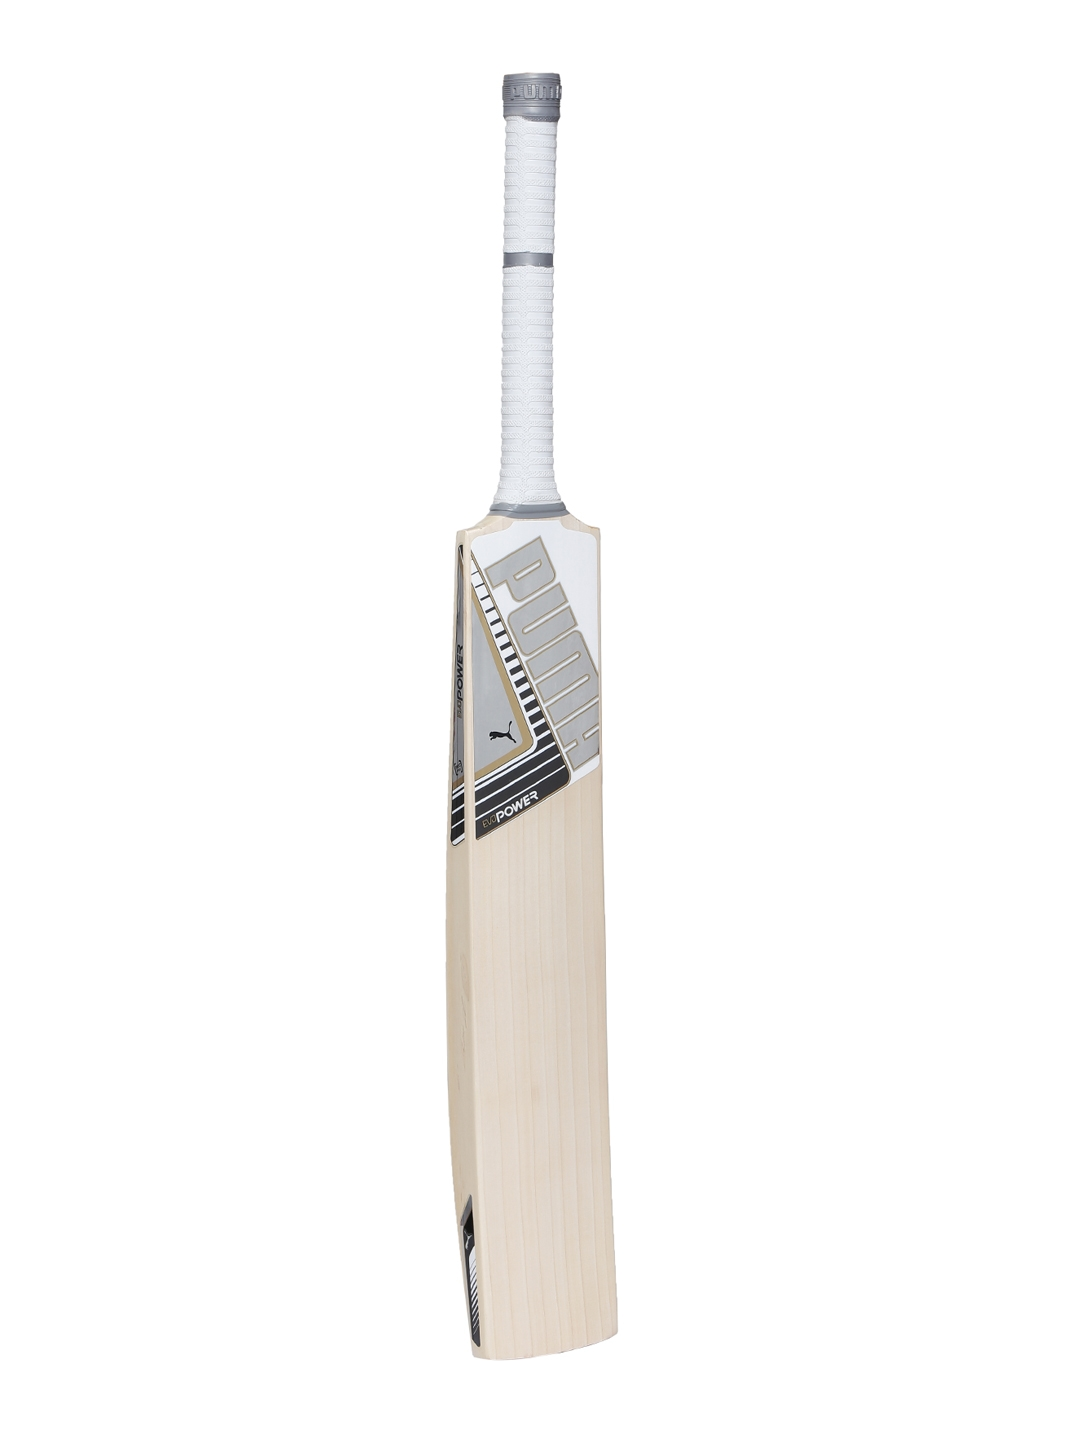 Buy Puma White EvoPOWER 1 SE White Edition 1 Cricket Bat - Cricket ... f2a8557d9e